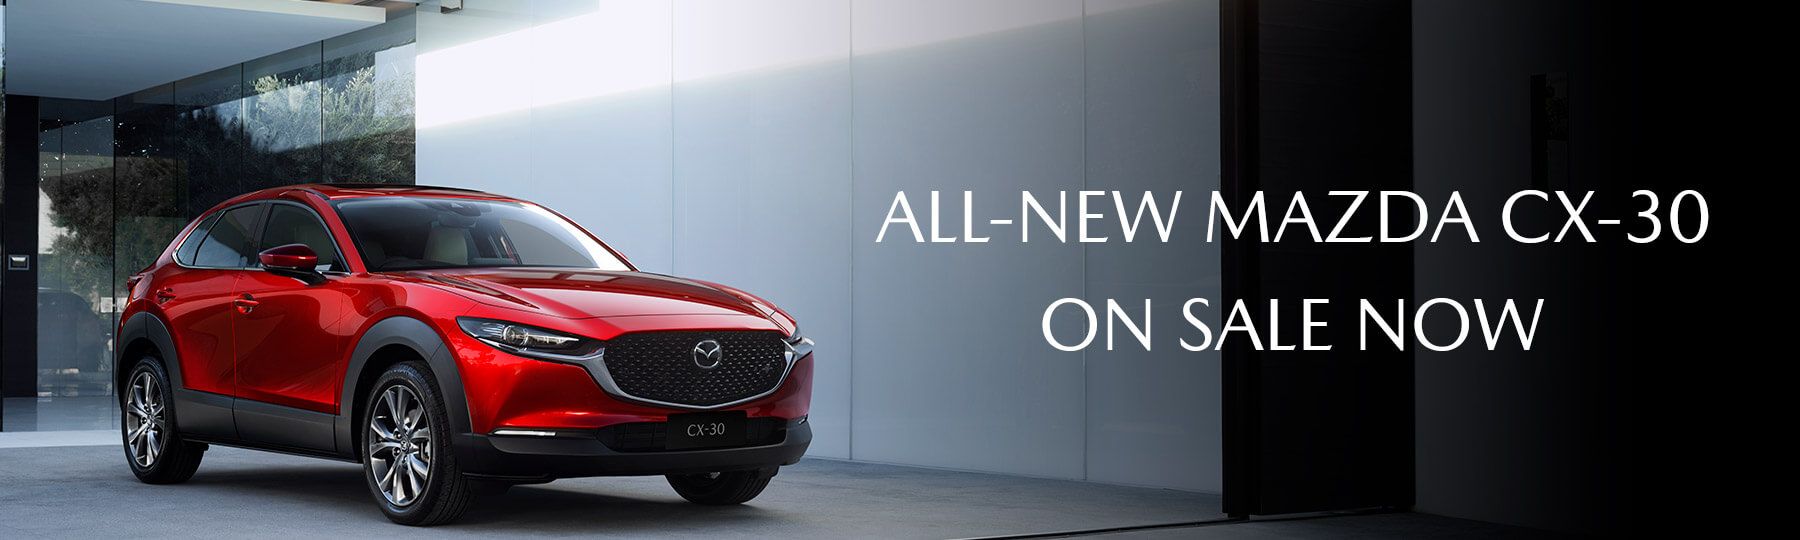 Mazda All-New CX-30